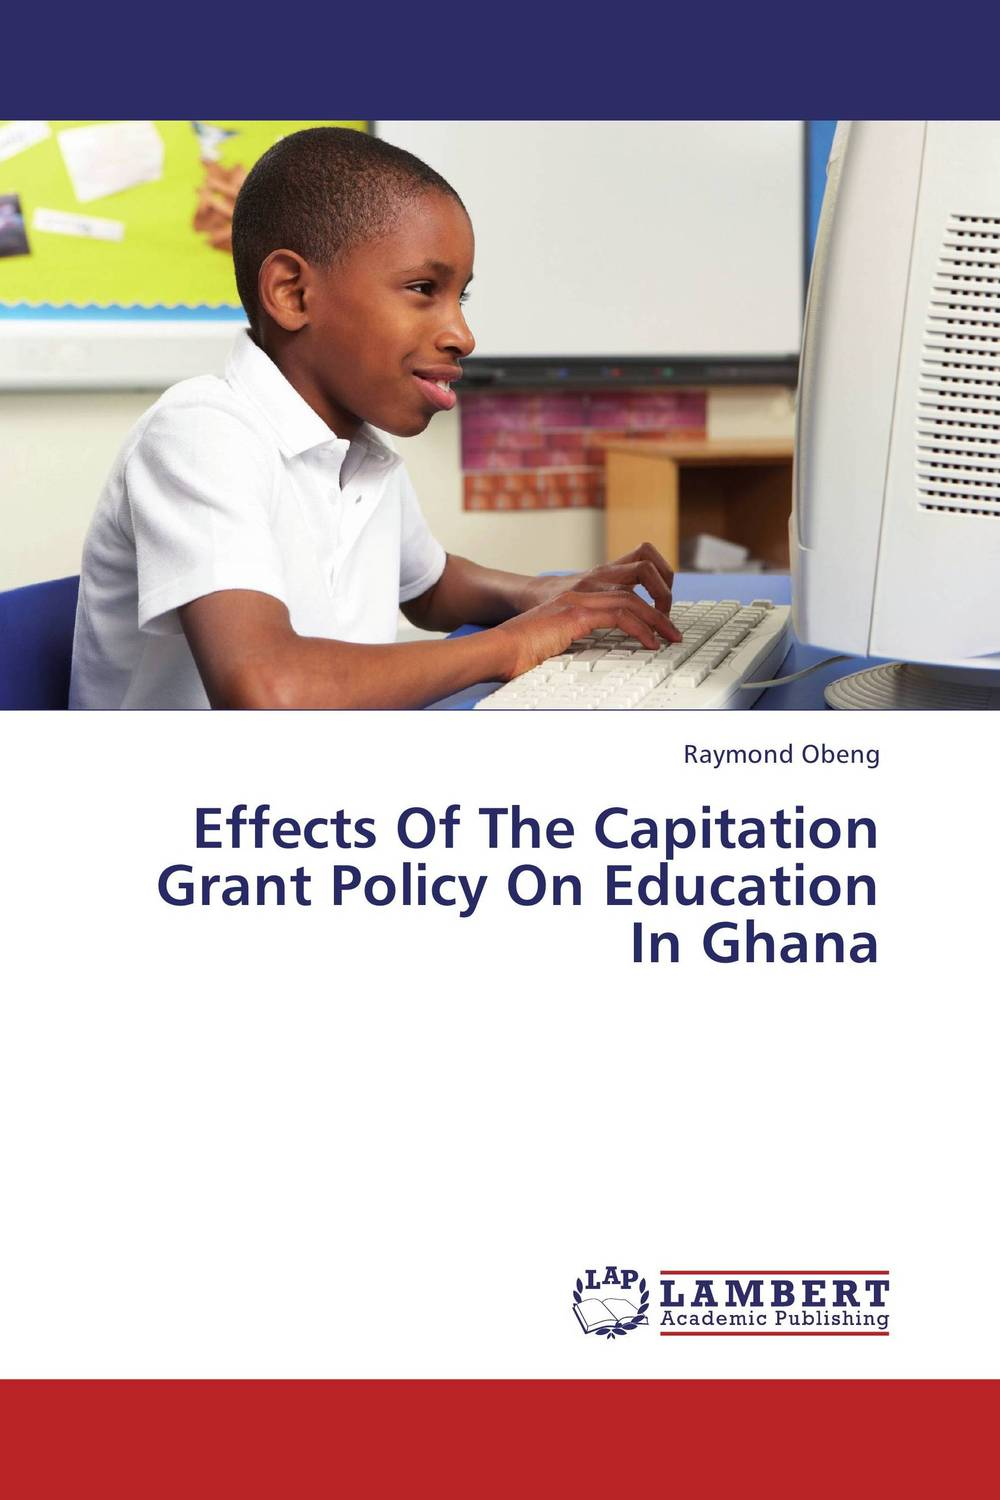 Effects Of The Capitation Grant Policy On Education In Ghana